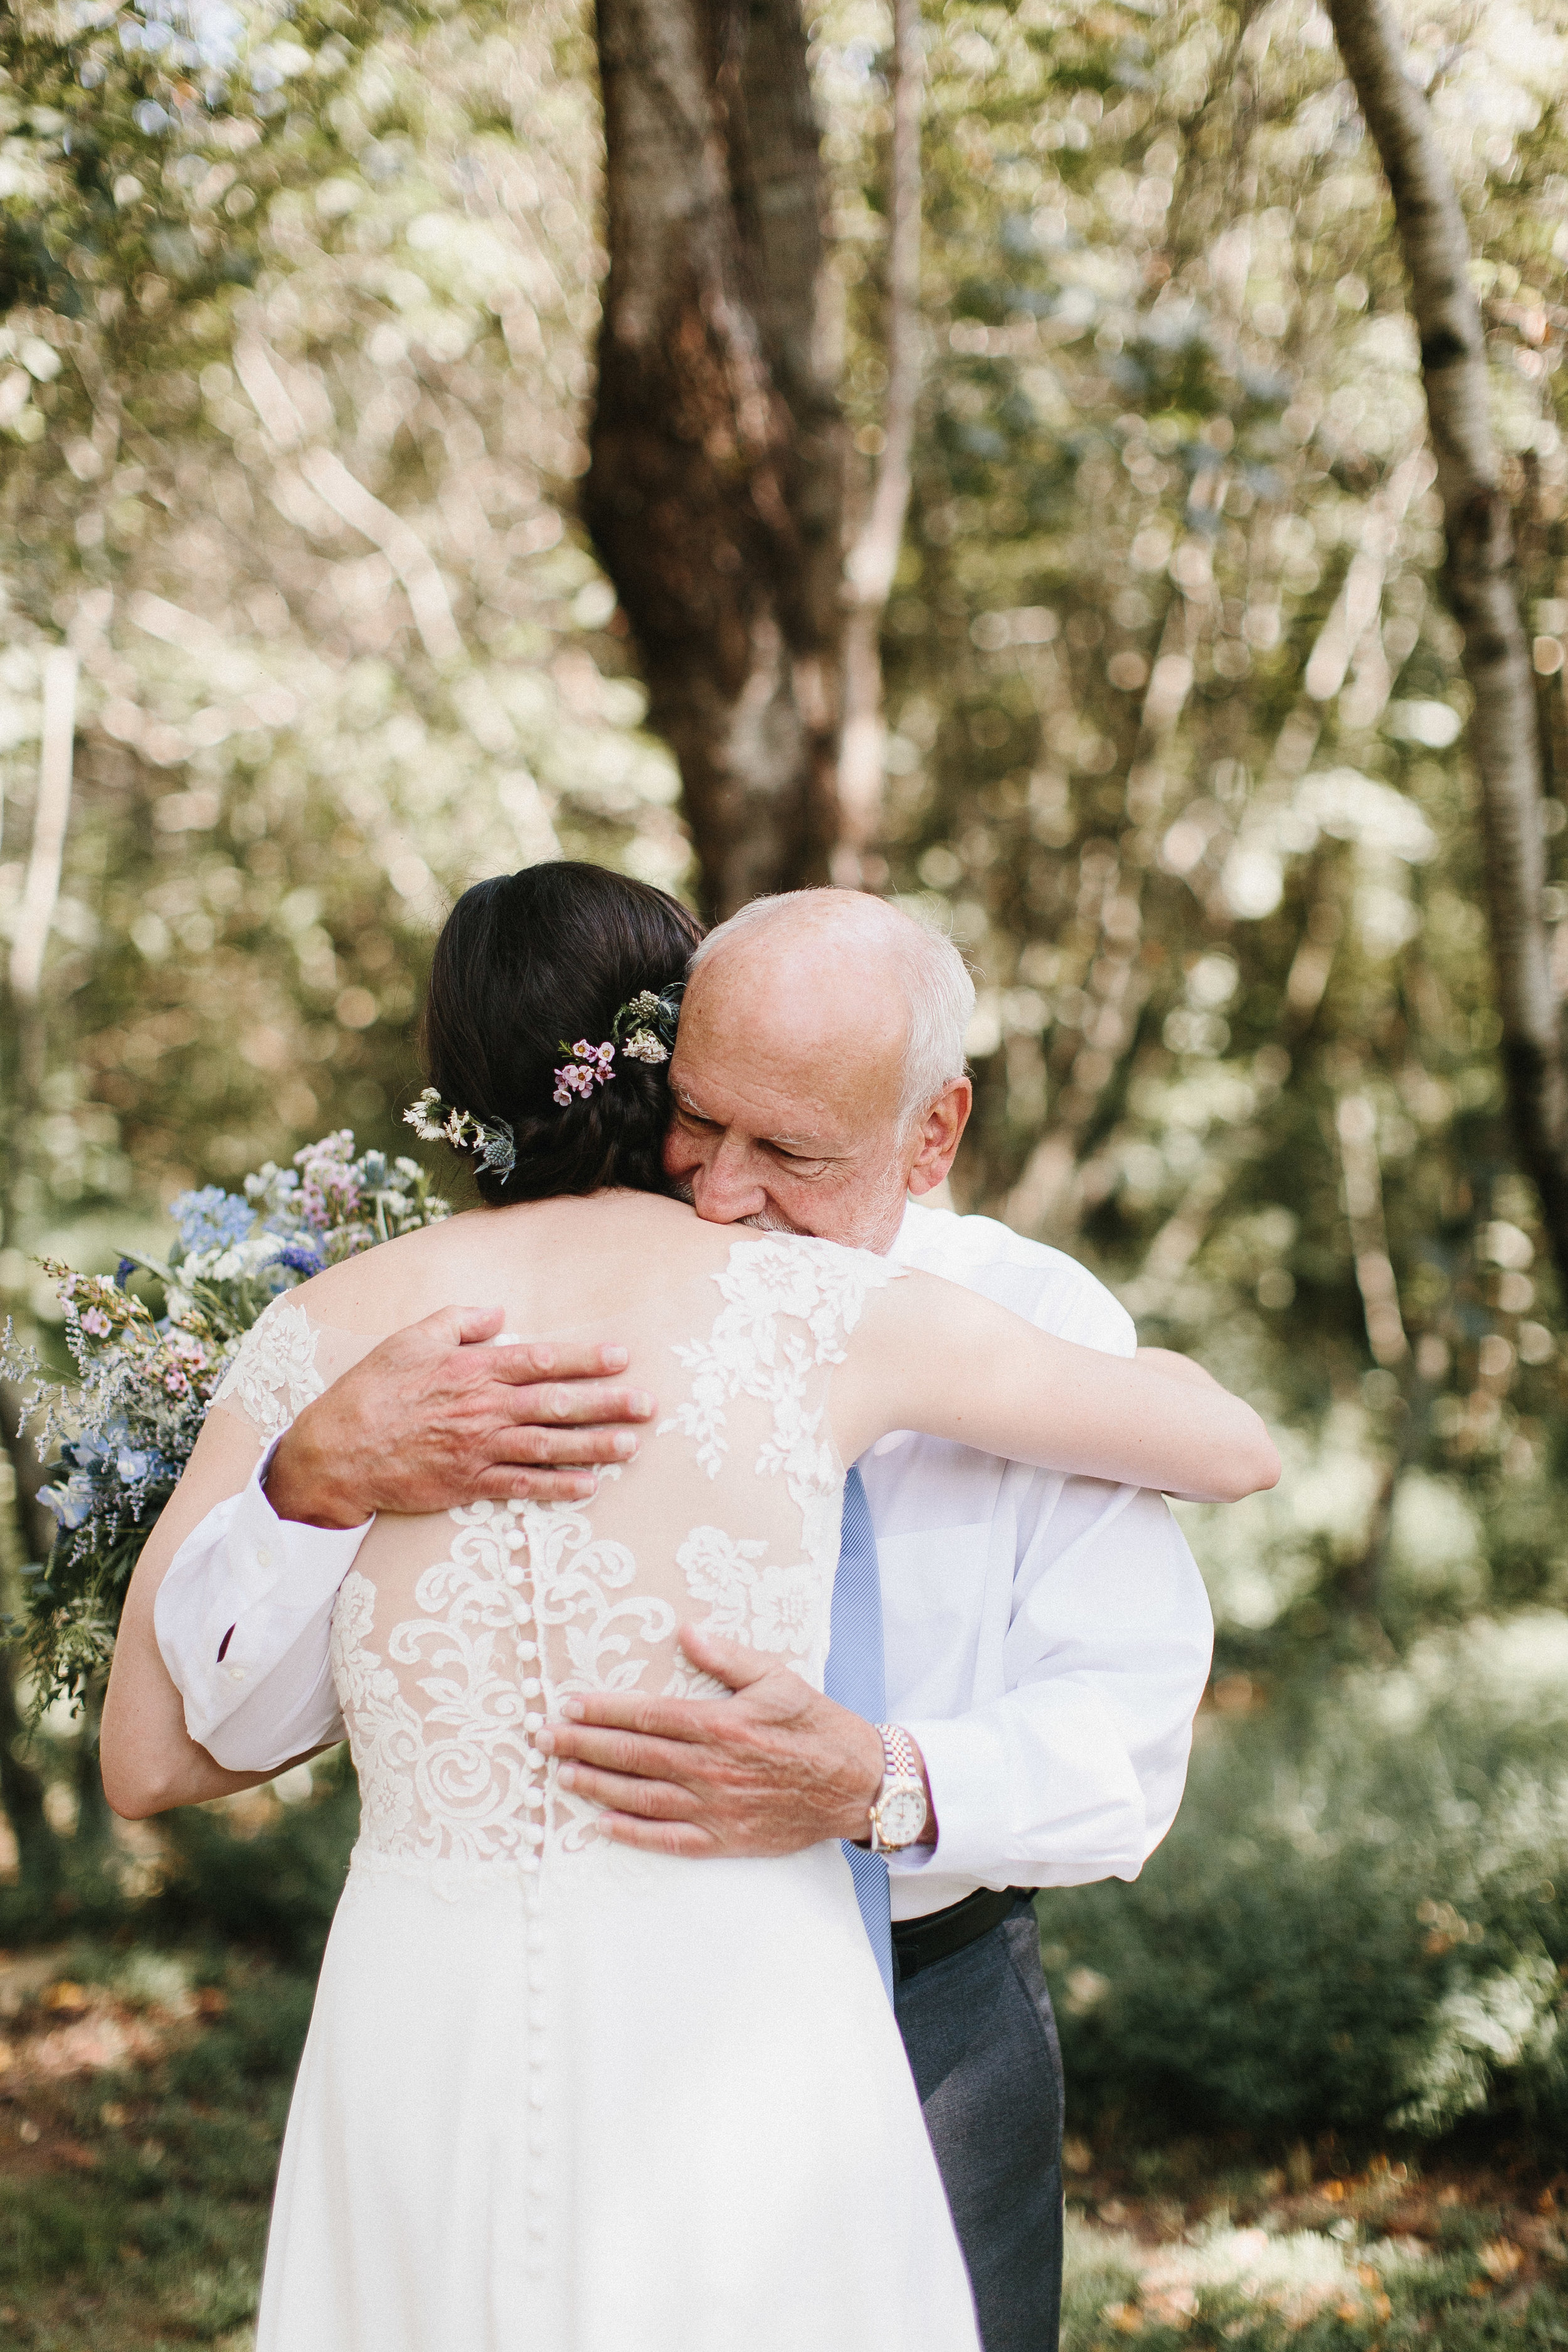 cleveland_georgia_mountain_laurel_farm_natural_classic_timeless_documentary_candid_wedding_emotional_photojournalism_river_west_1305.jpg